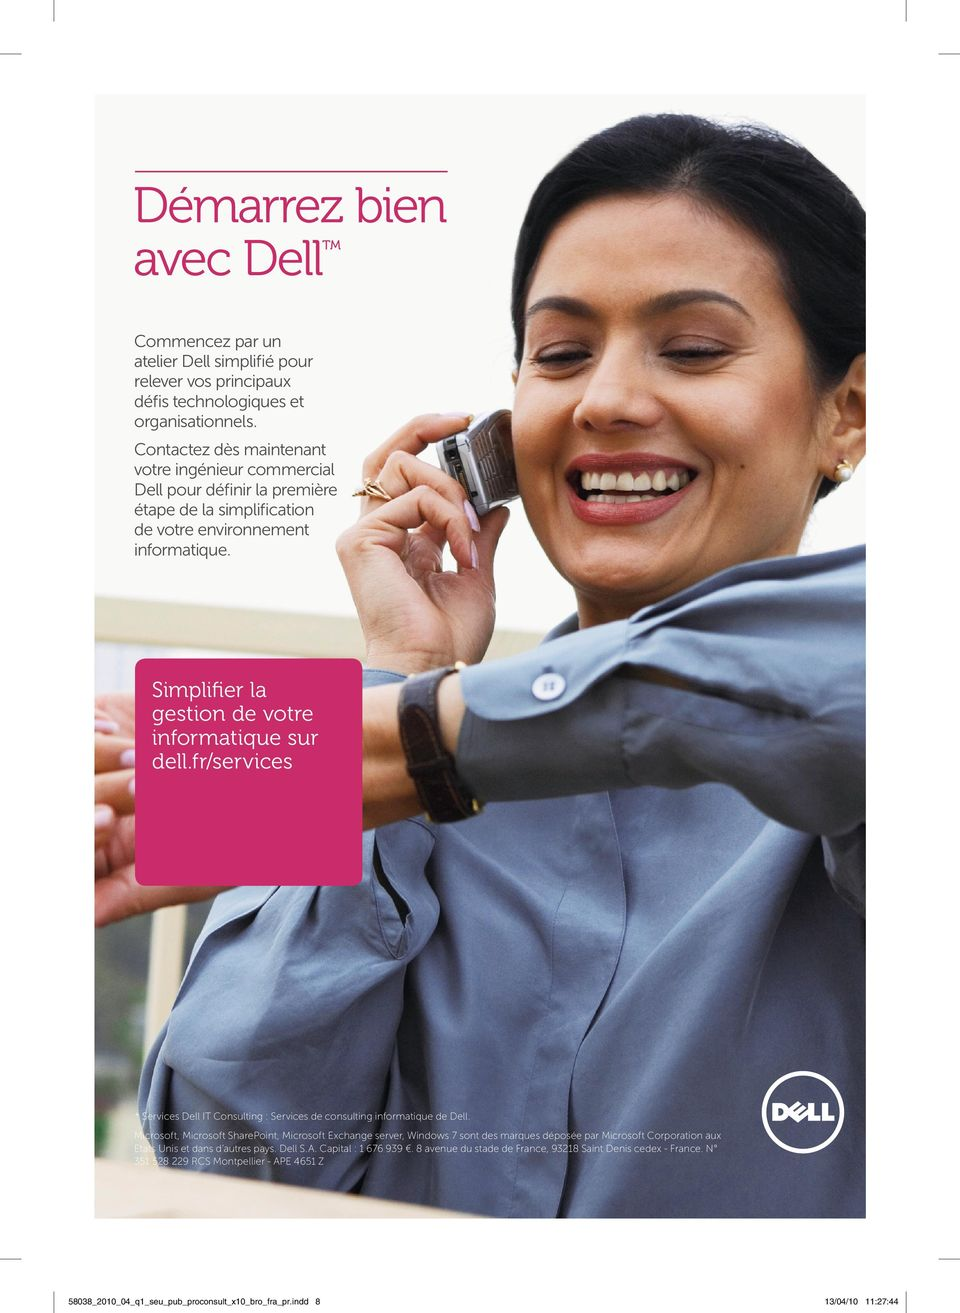 fr/services * Services Dell IT Consulting : Services de consulting informatique de Dell.